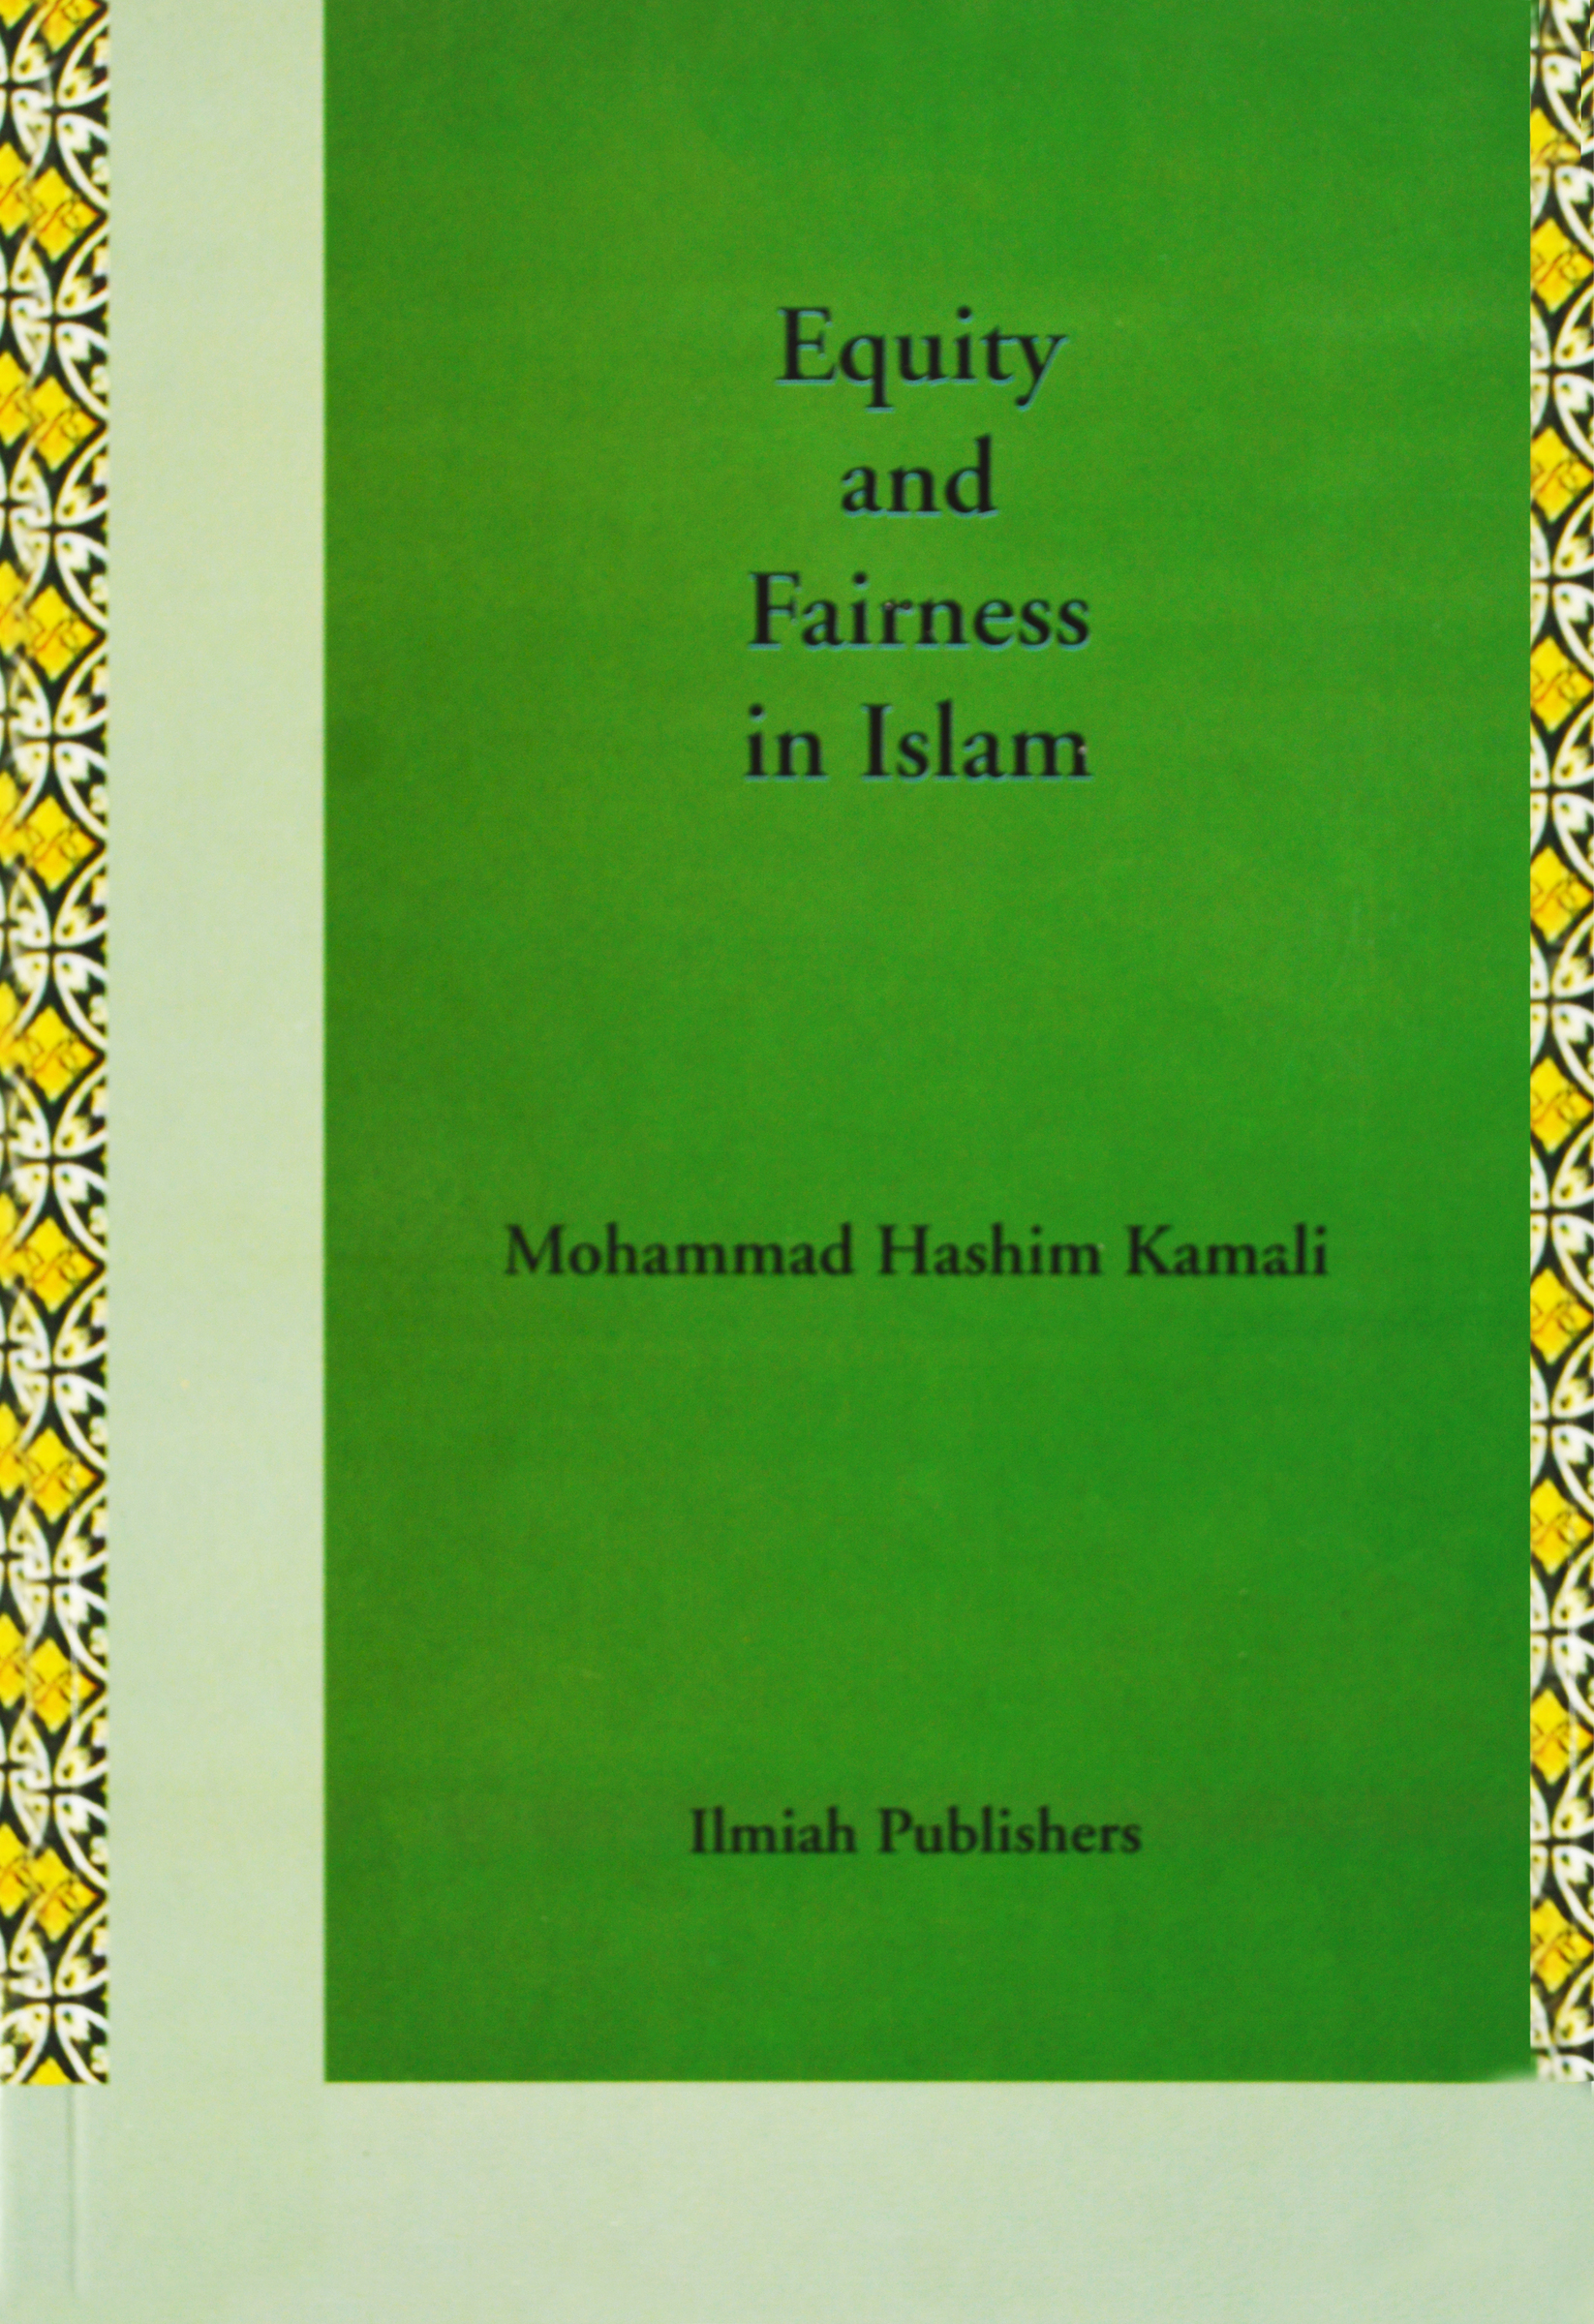 Equity and Fairness in Islam.jpg